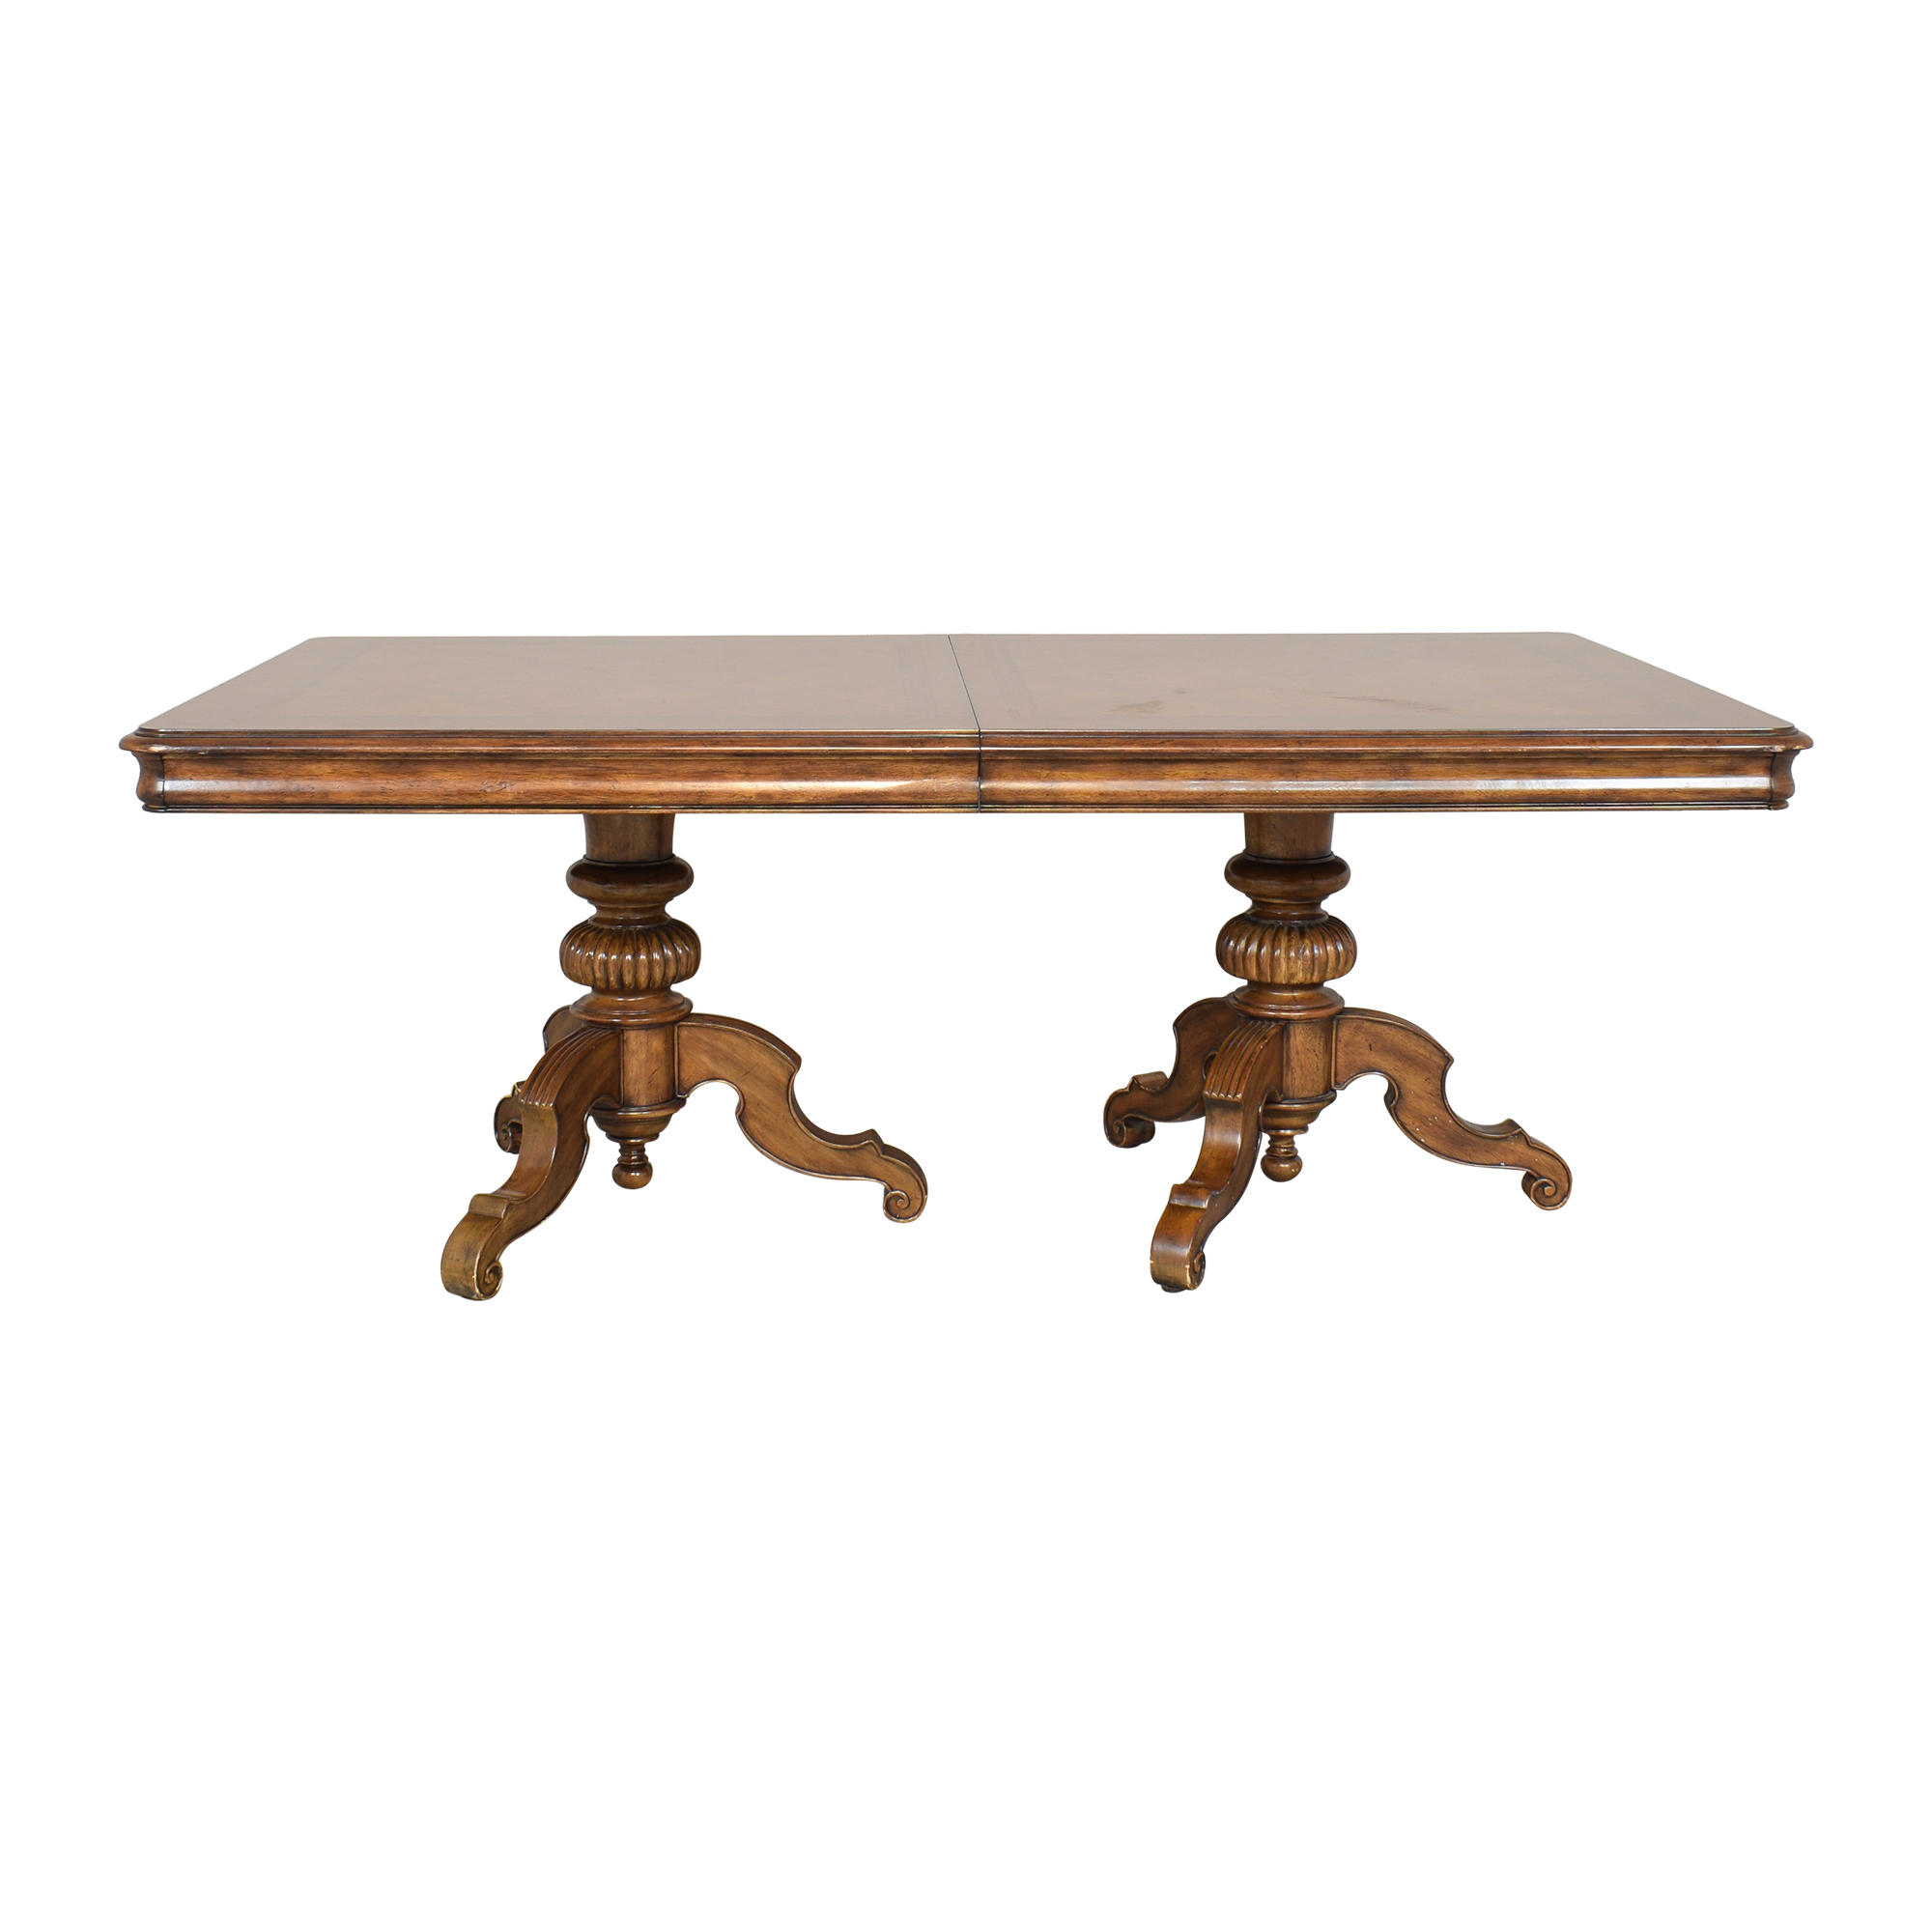 Thomasville Thomasville Ernest Hemingway Castillian Double Pedestal Dining Table brown